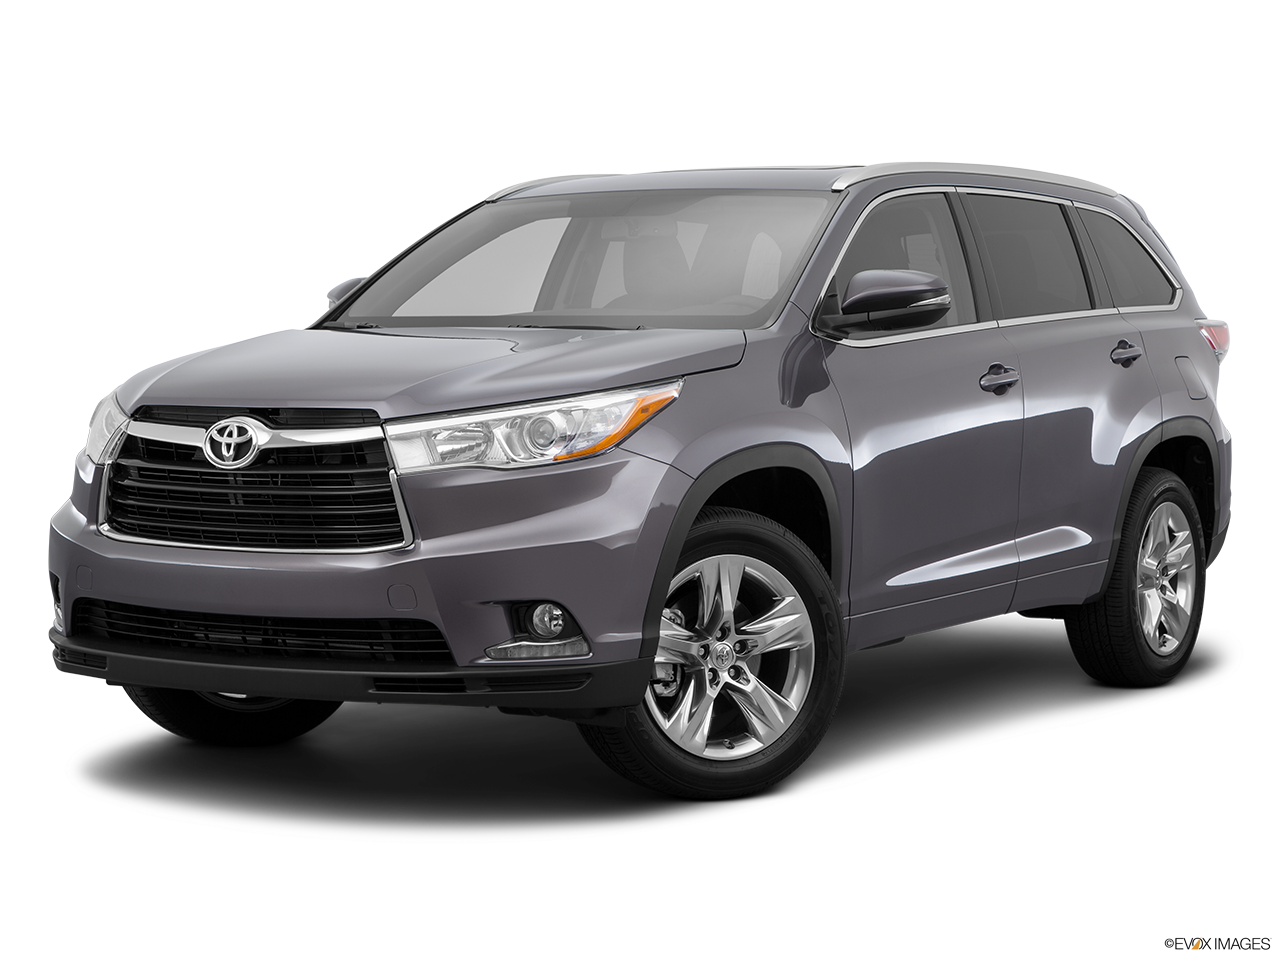 2015 toyota highlander information and photos zombiedrive. Black Bedroom Furniture Sets. Home Design Ideas